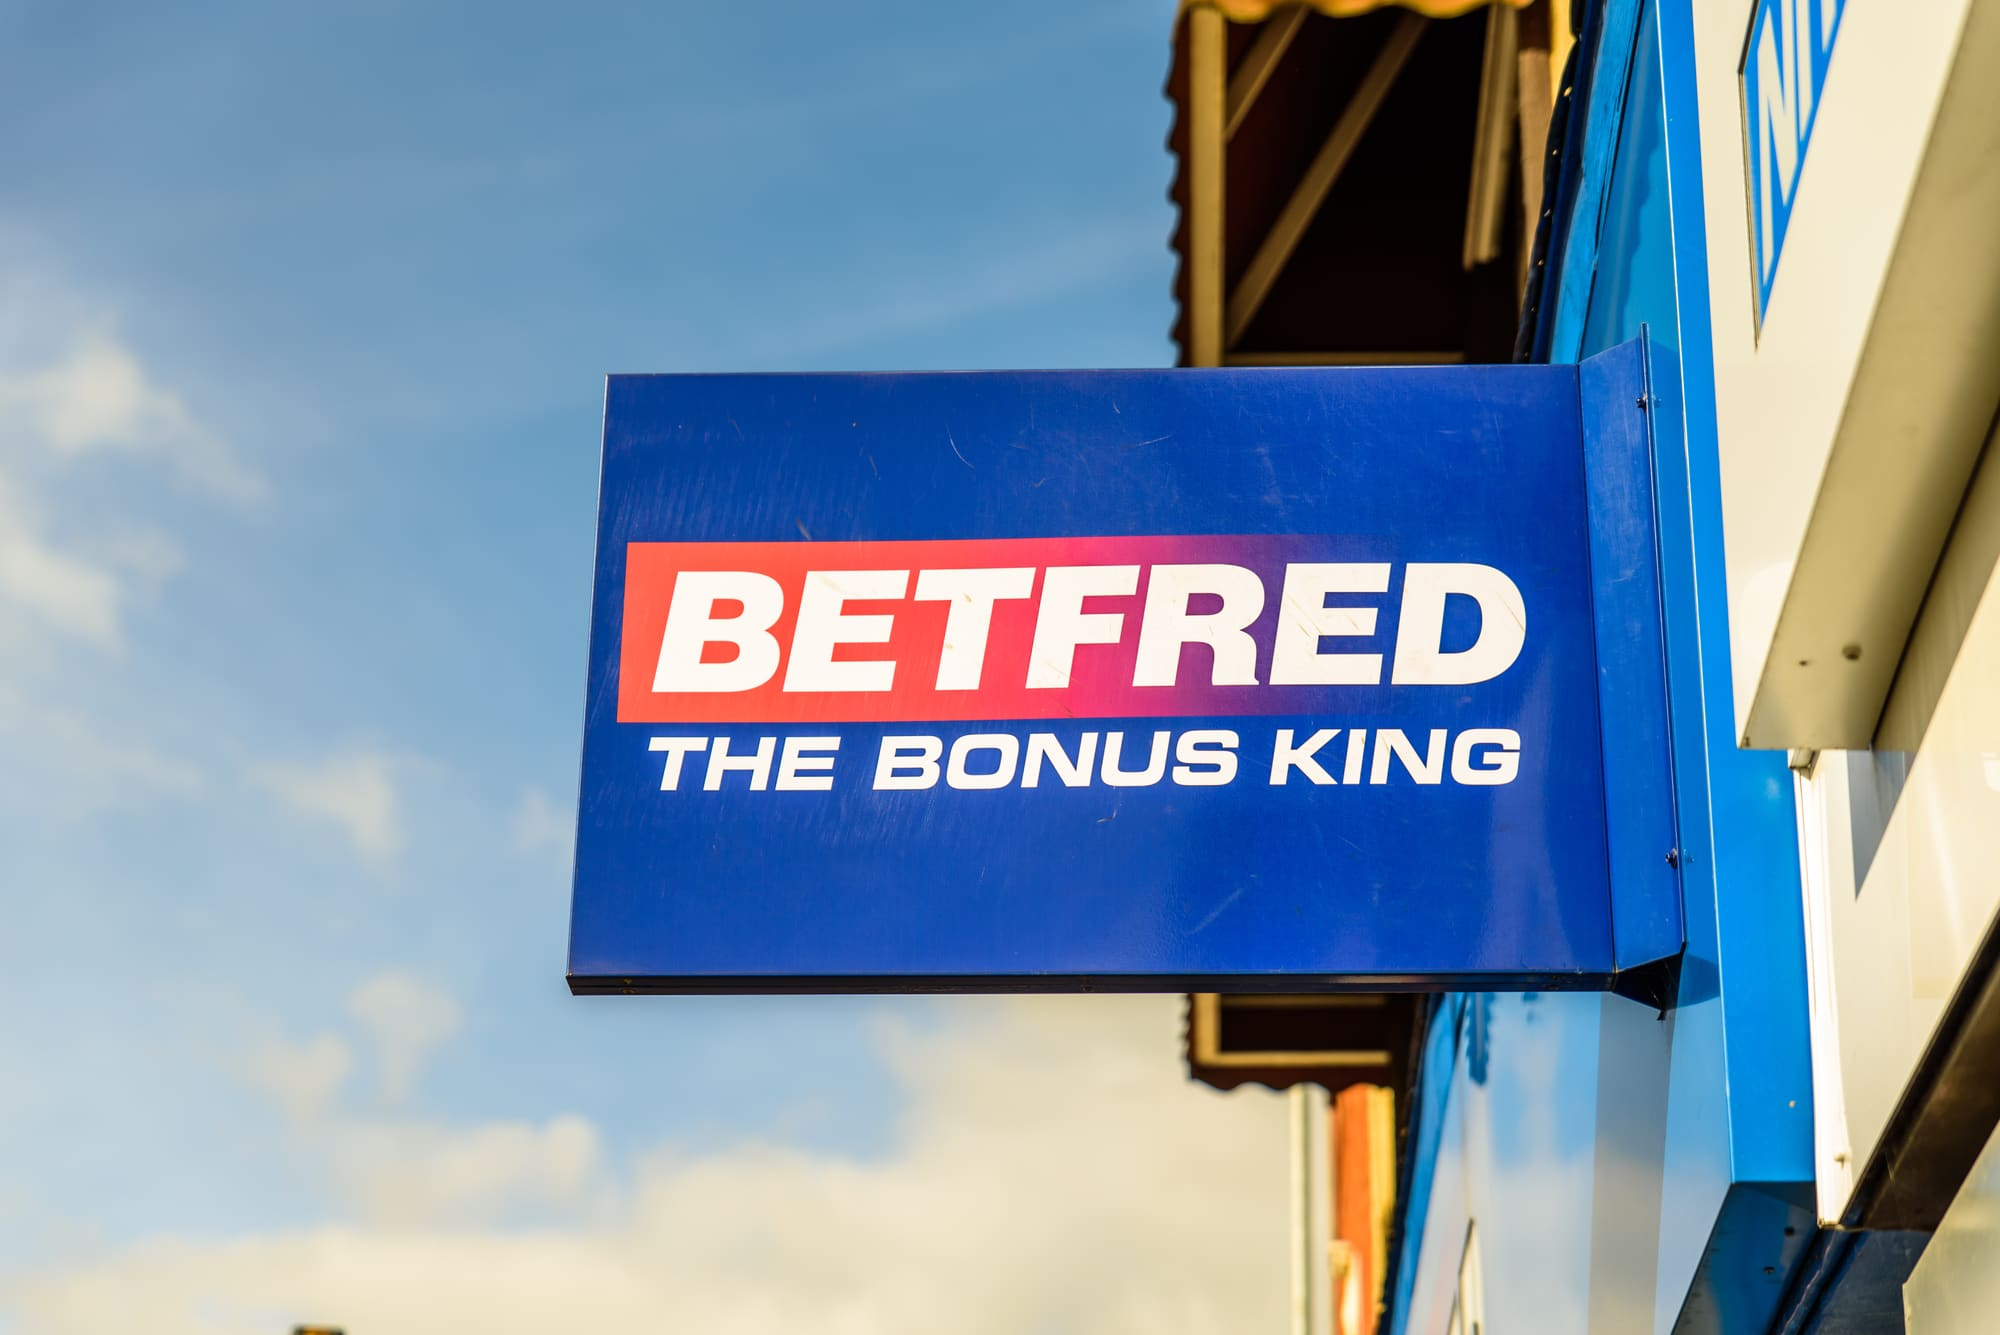 Betfred an Independent Bookmaker founded in 1967